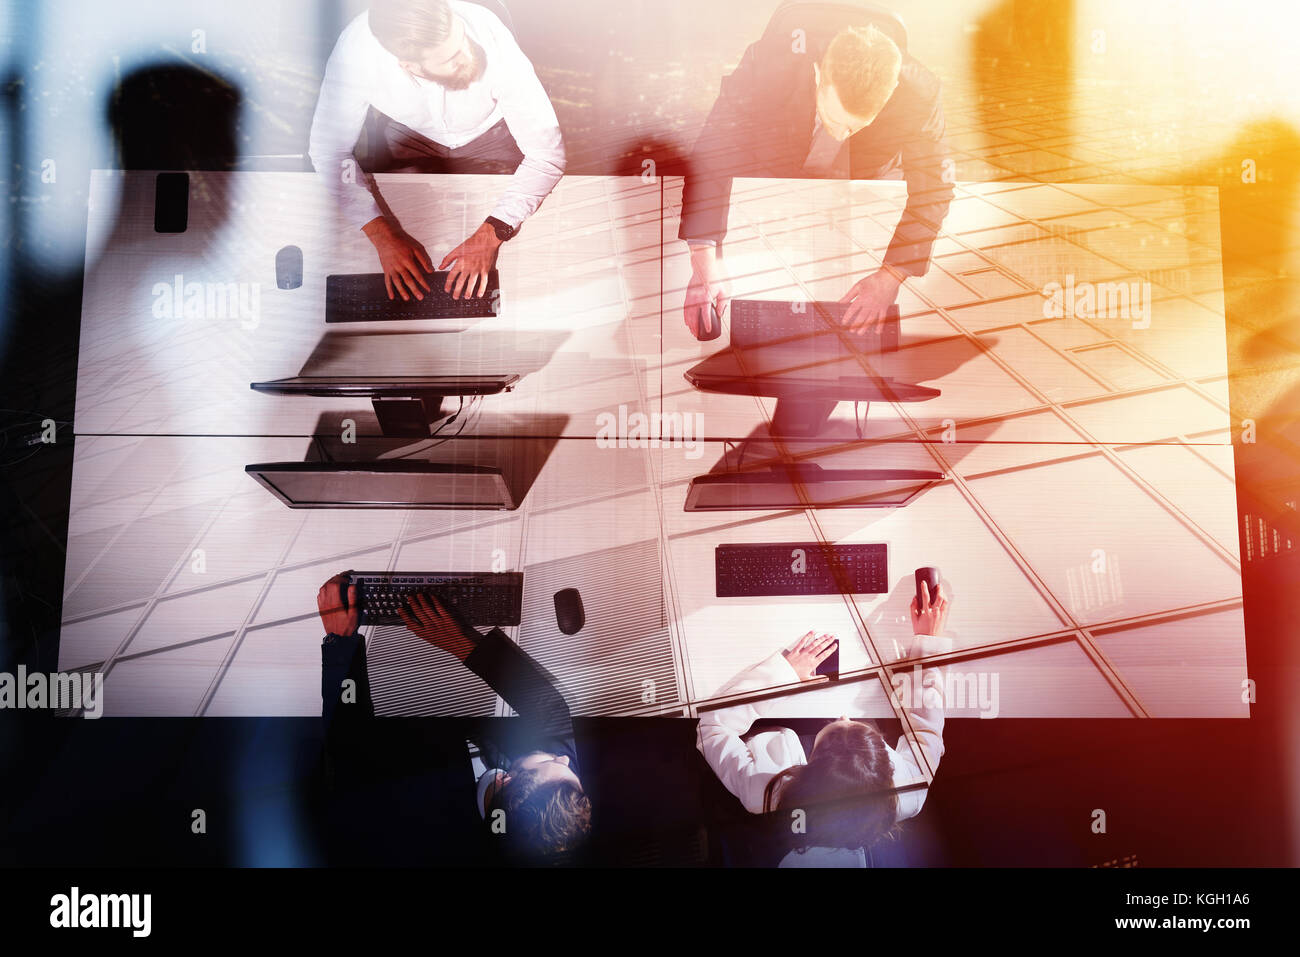 Businessperson in office work together with computer. concept of partnership and teamwork - Stock Image